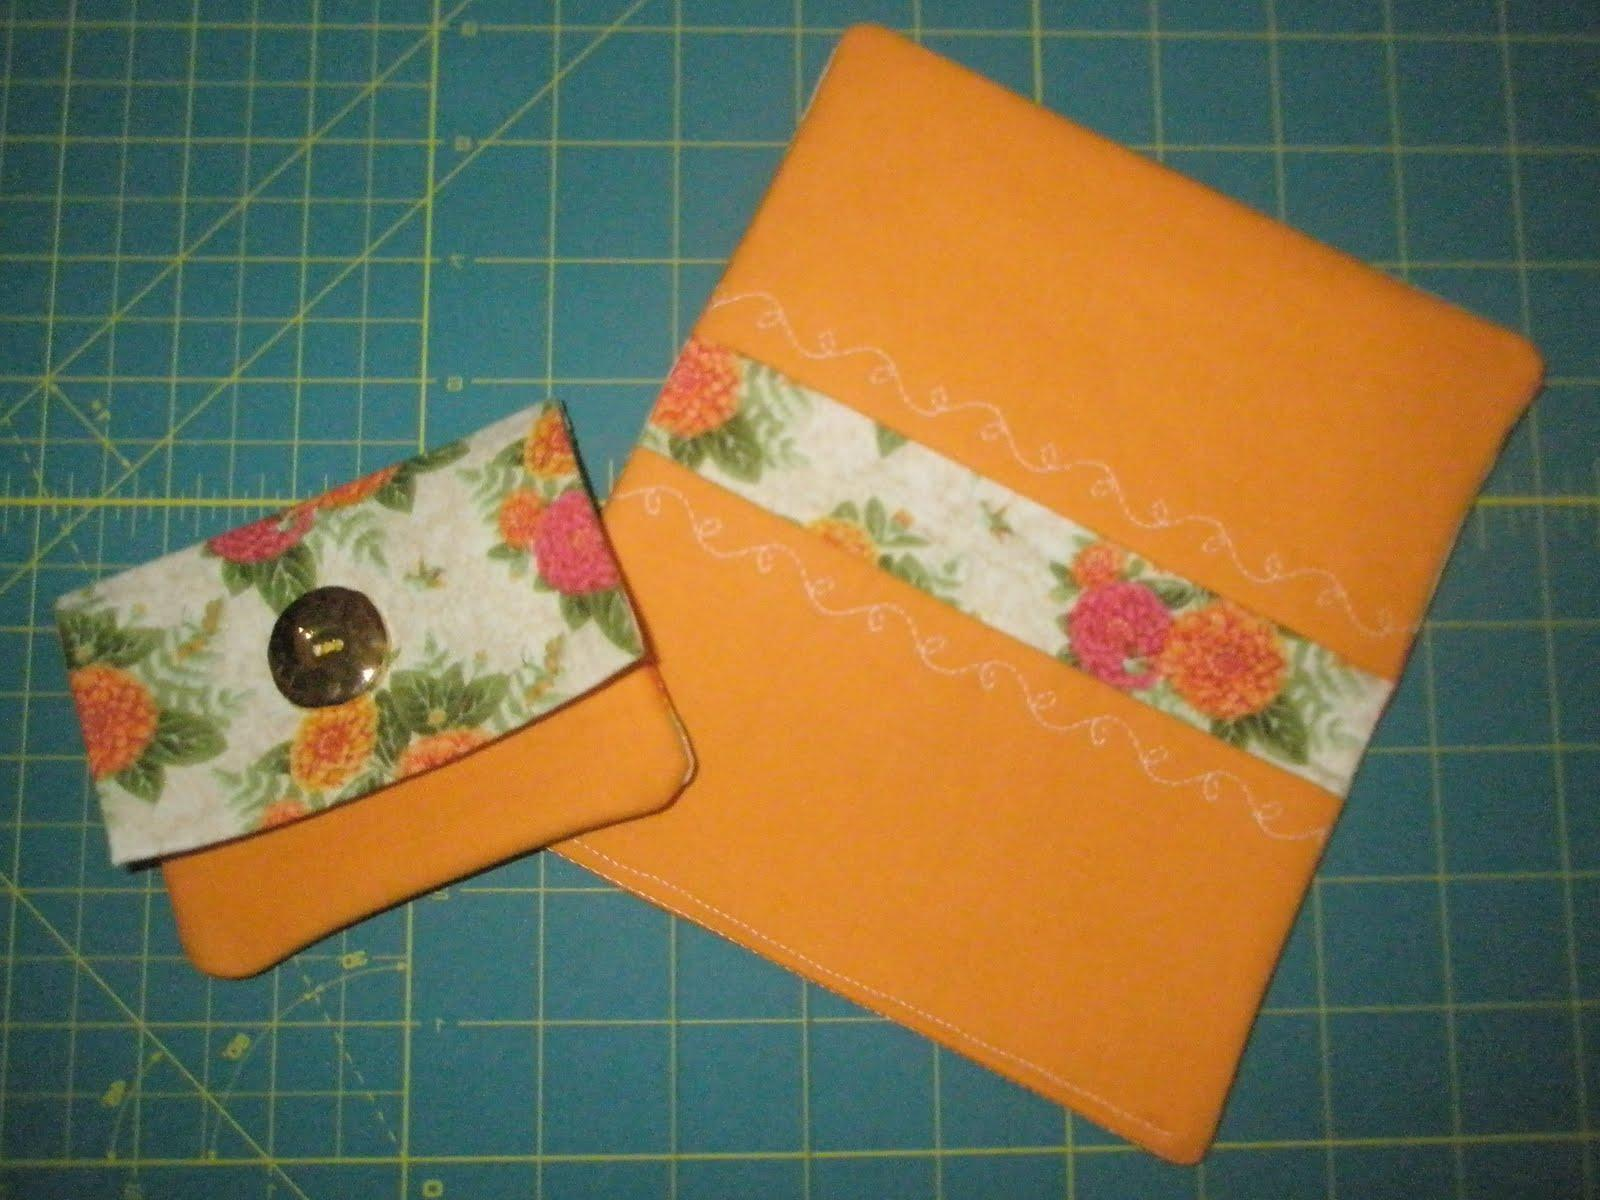 and a wallet card holder